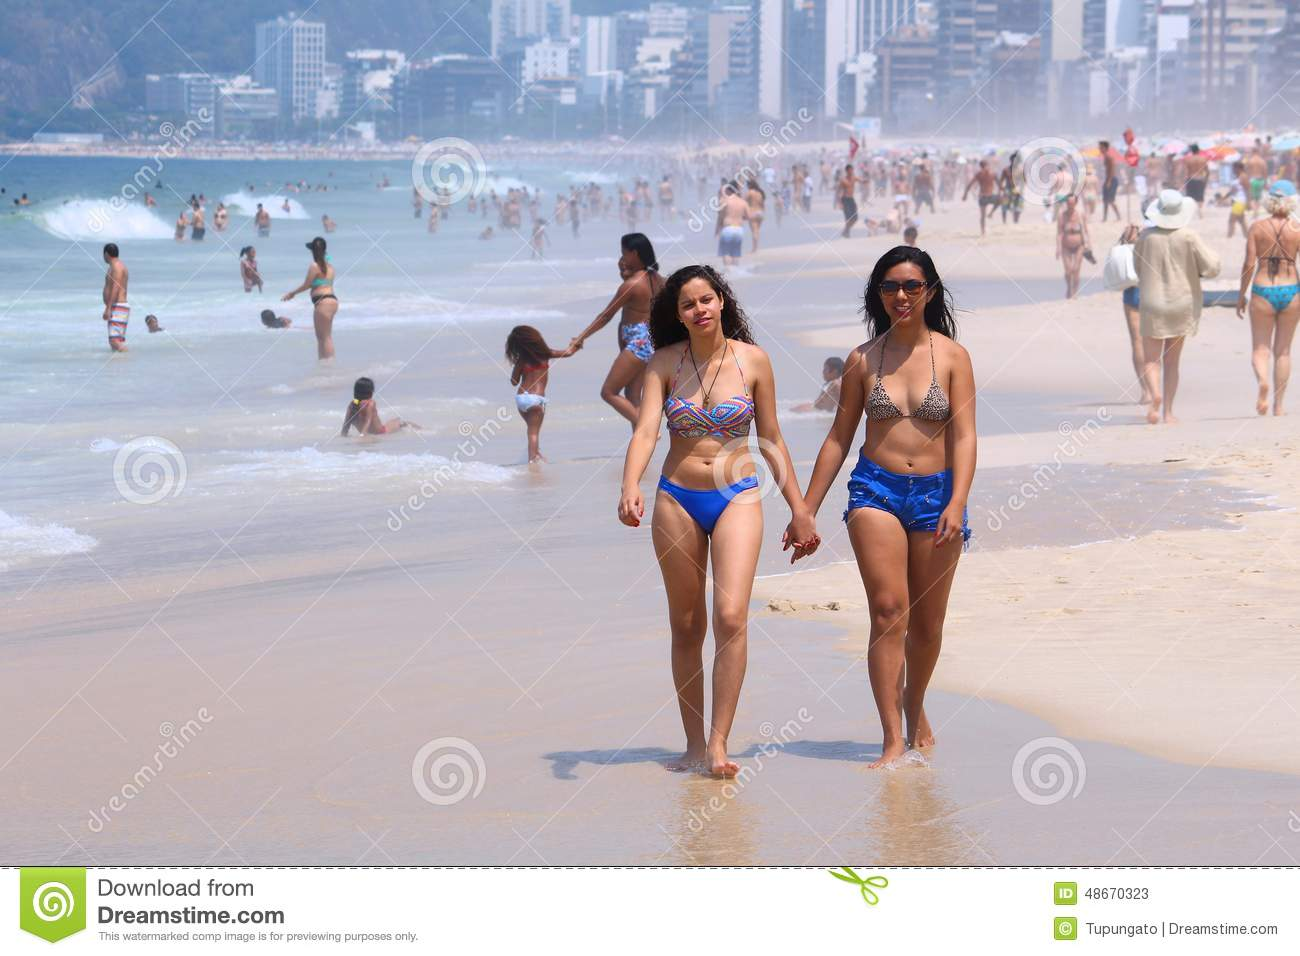 Brazilian Beach With Naked People